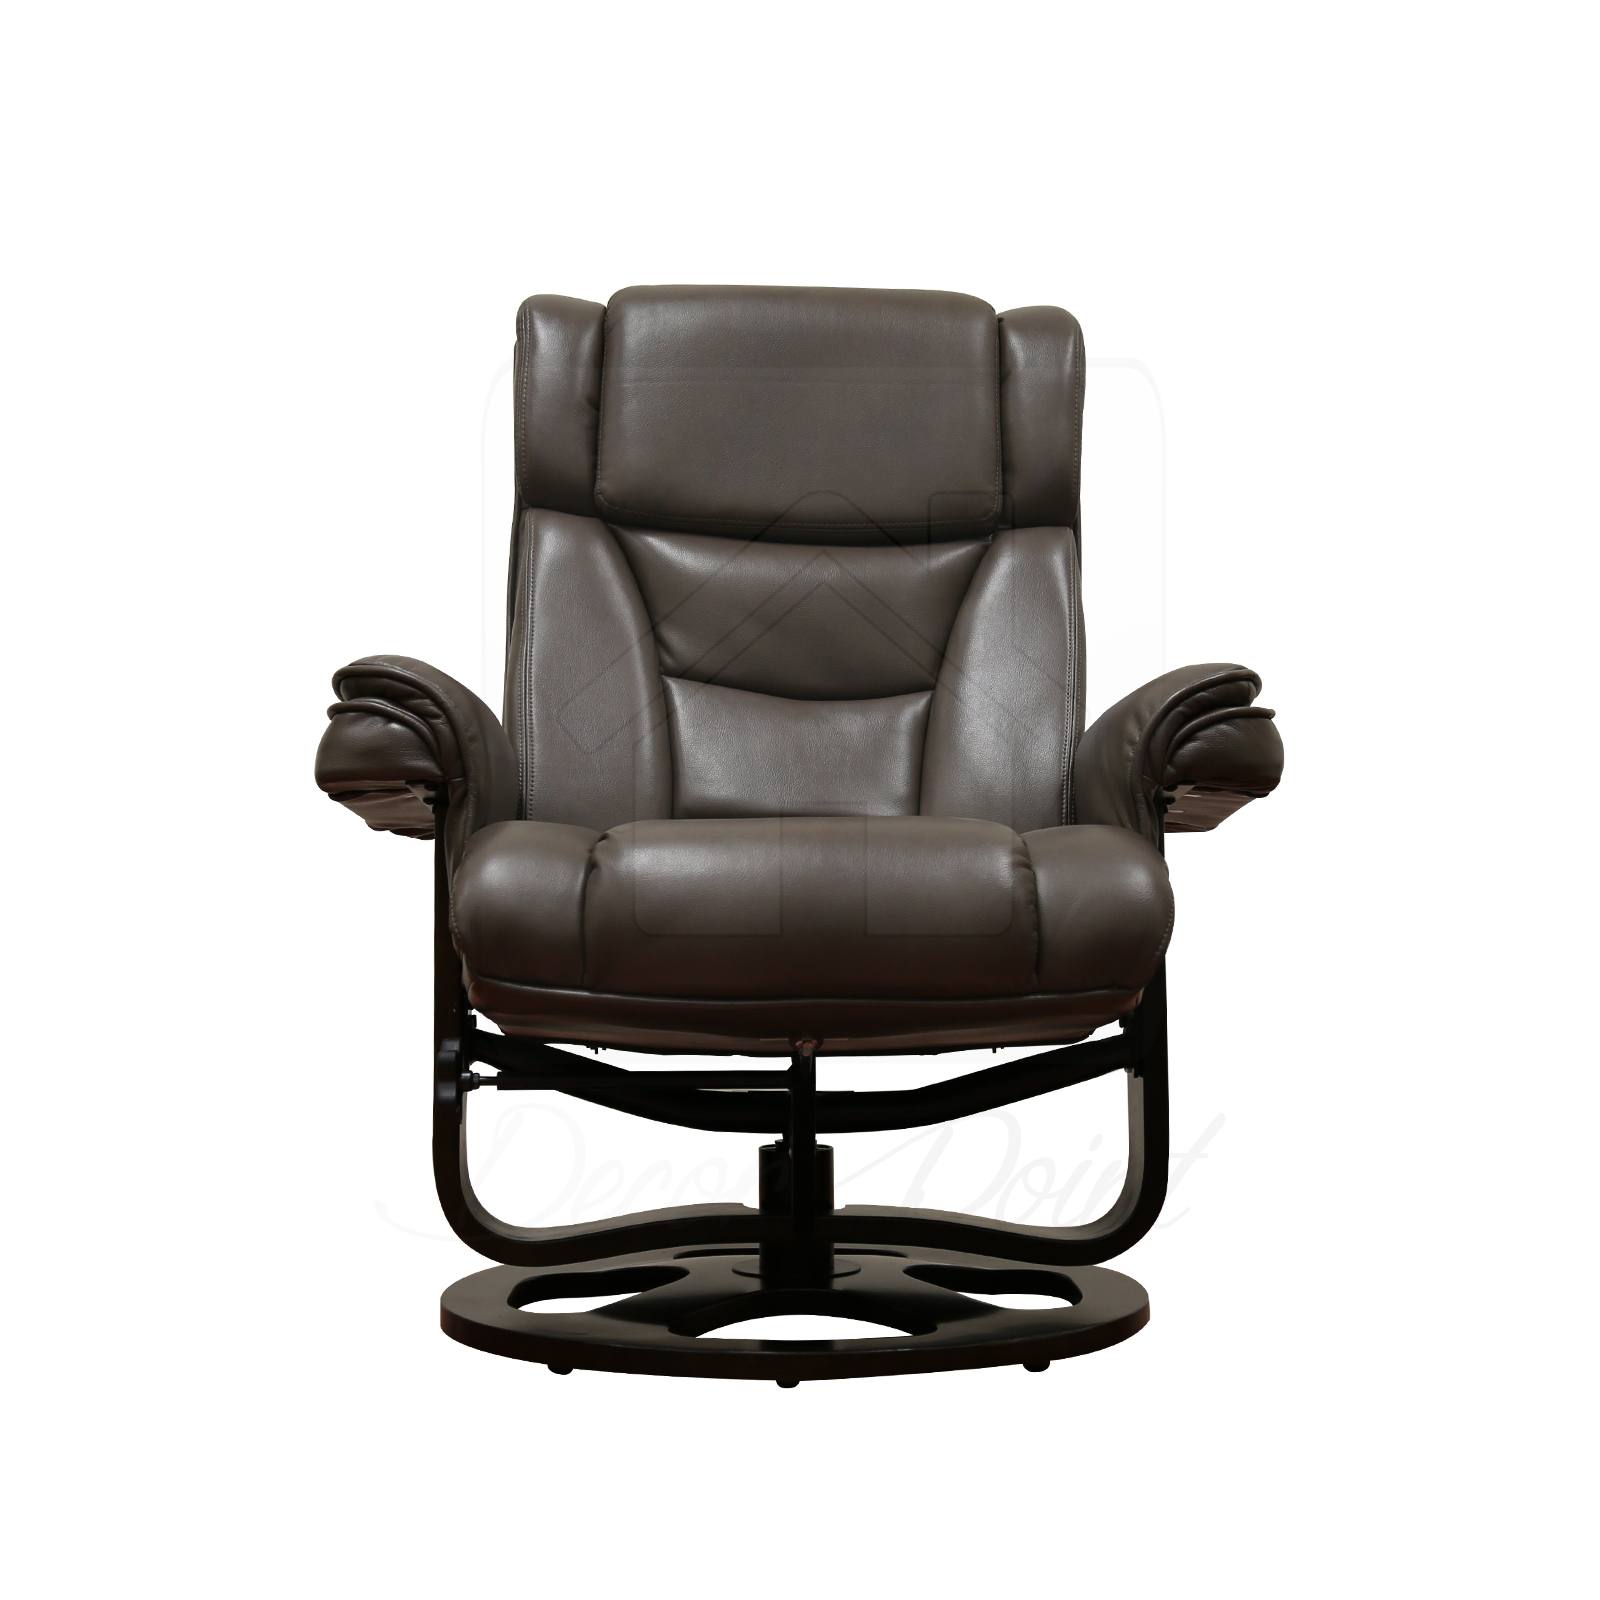 swivel chair national bookstore best booster high for 2 year old monash leather air camel 360 degree living room